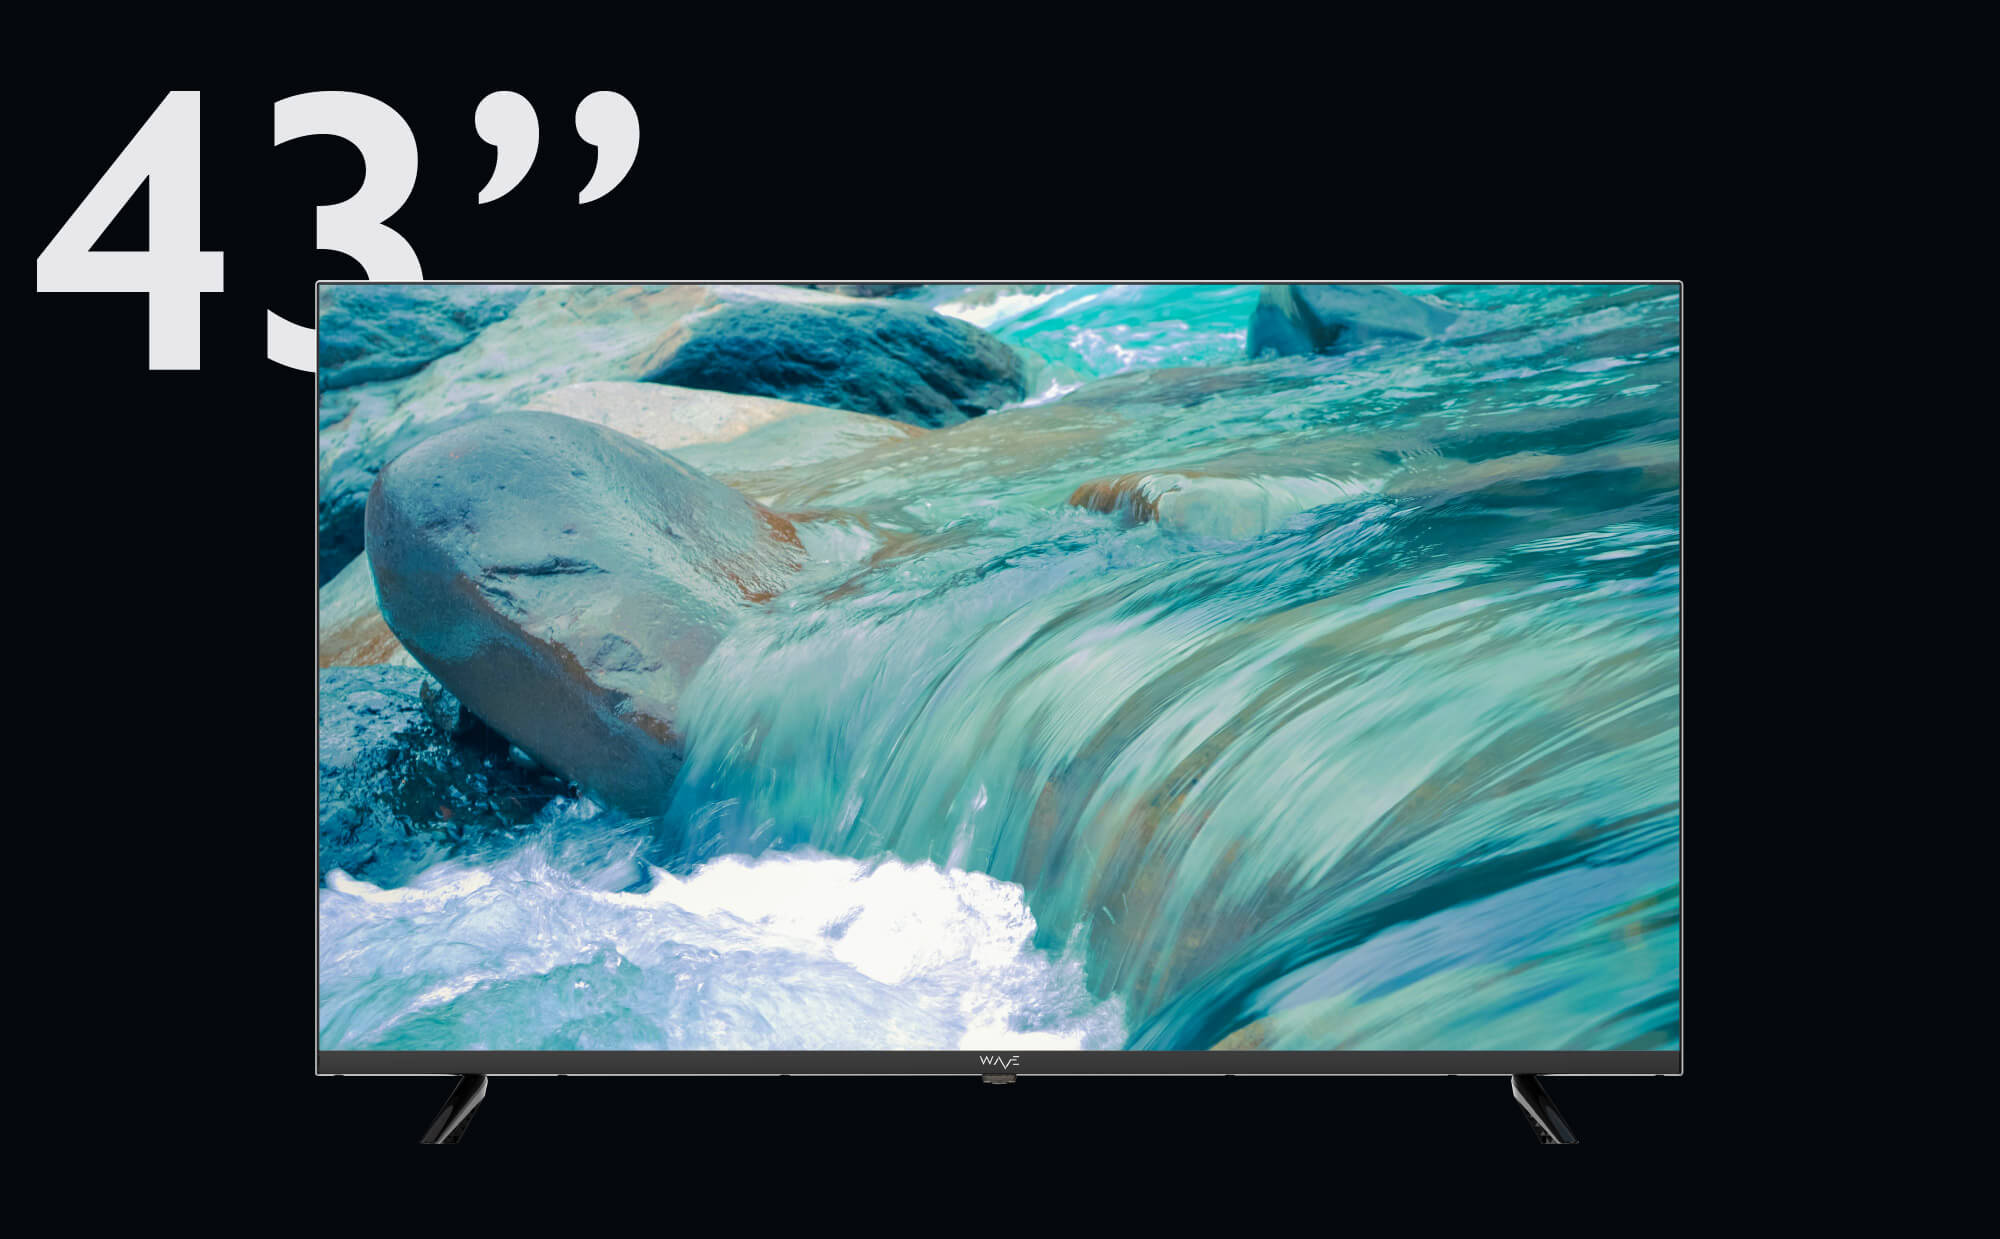 """WAVE Electronics presents 43"""" STREAM with Android 9.0 OS, frameless infinity screen, DOLBY AUDIO and 4K resolution at an affordable price"""